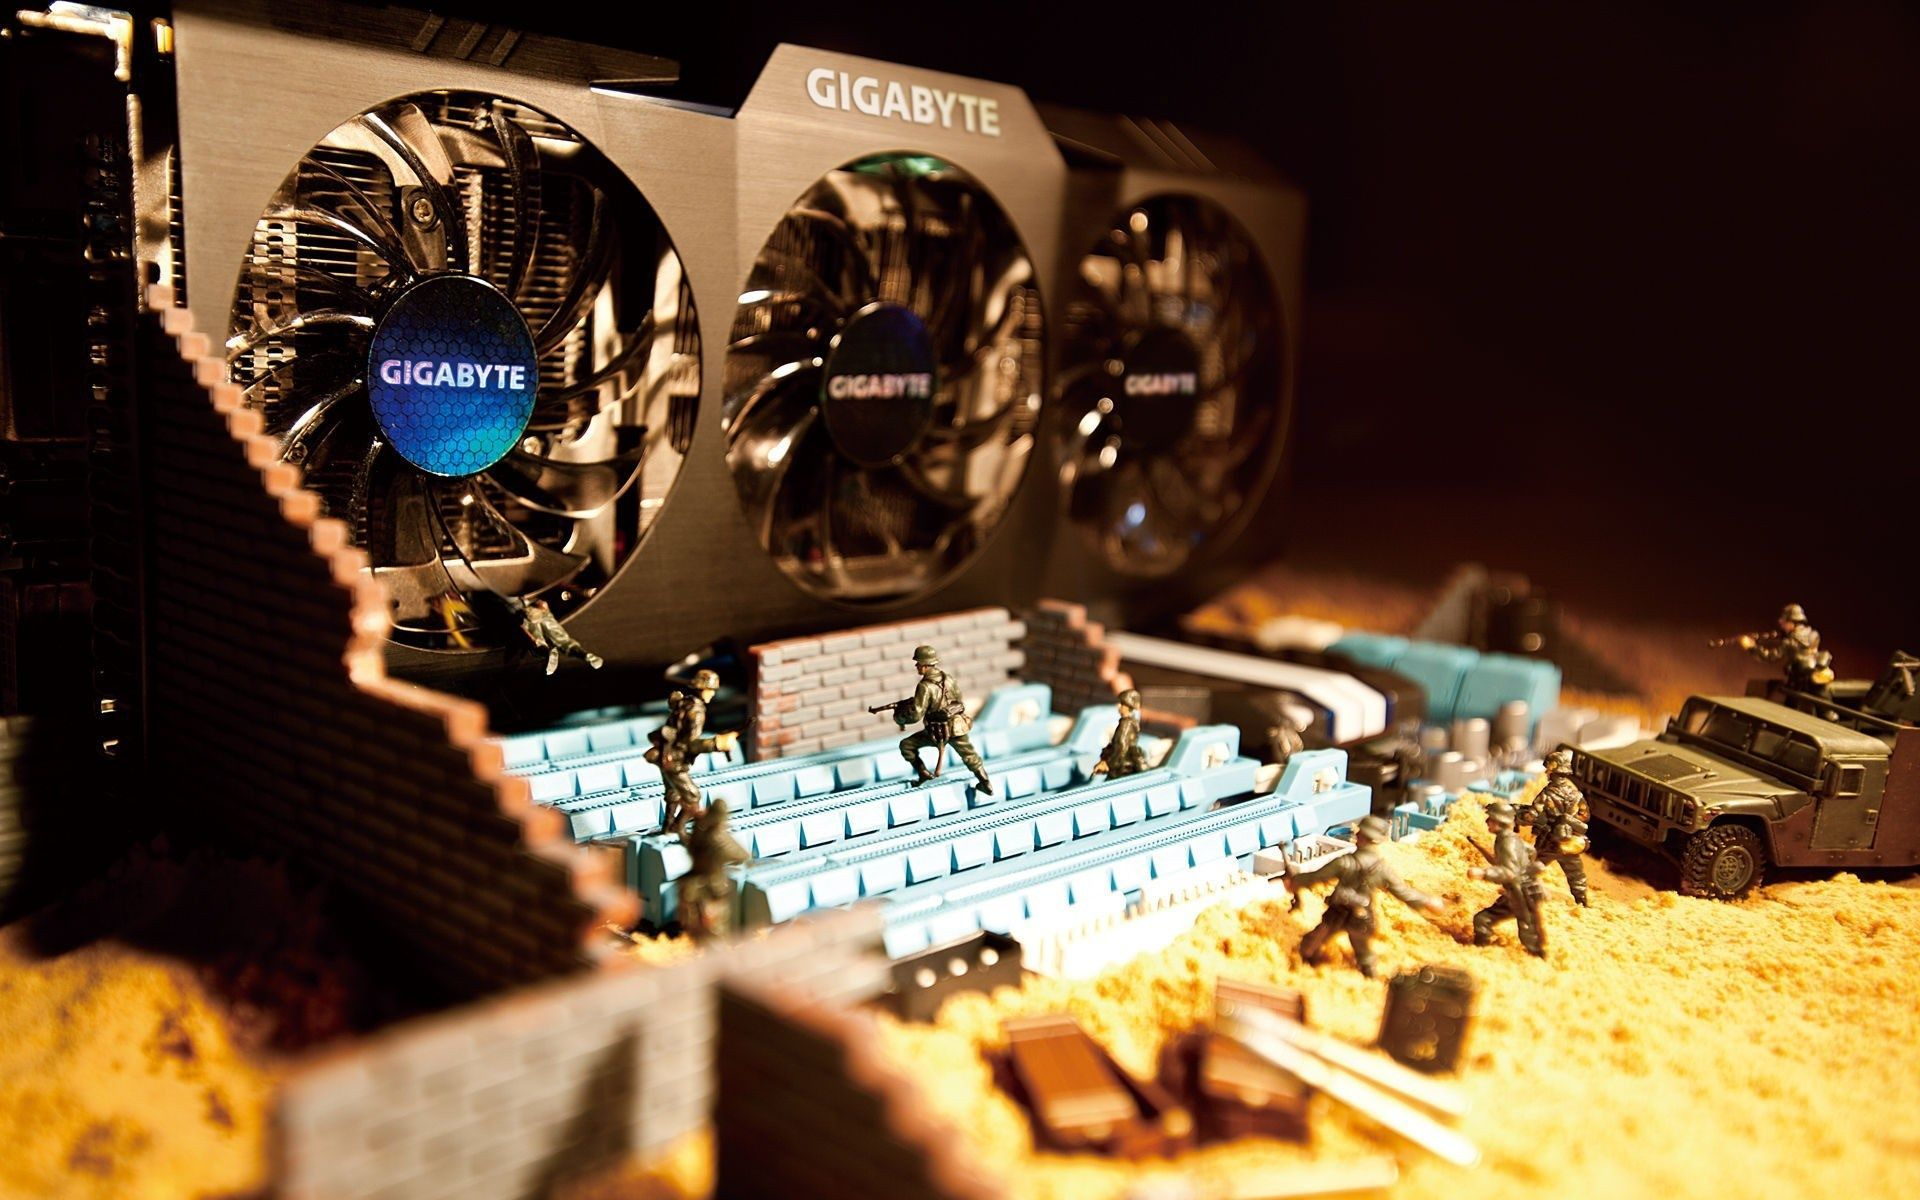 Motherboard Gigabyte Desktop Wallpapers   Top Motherboard 1920x1200